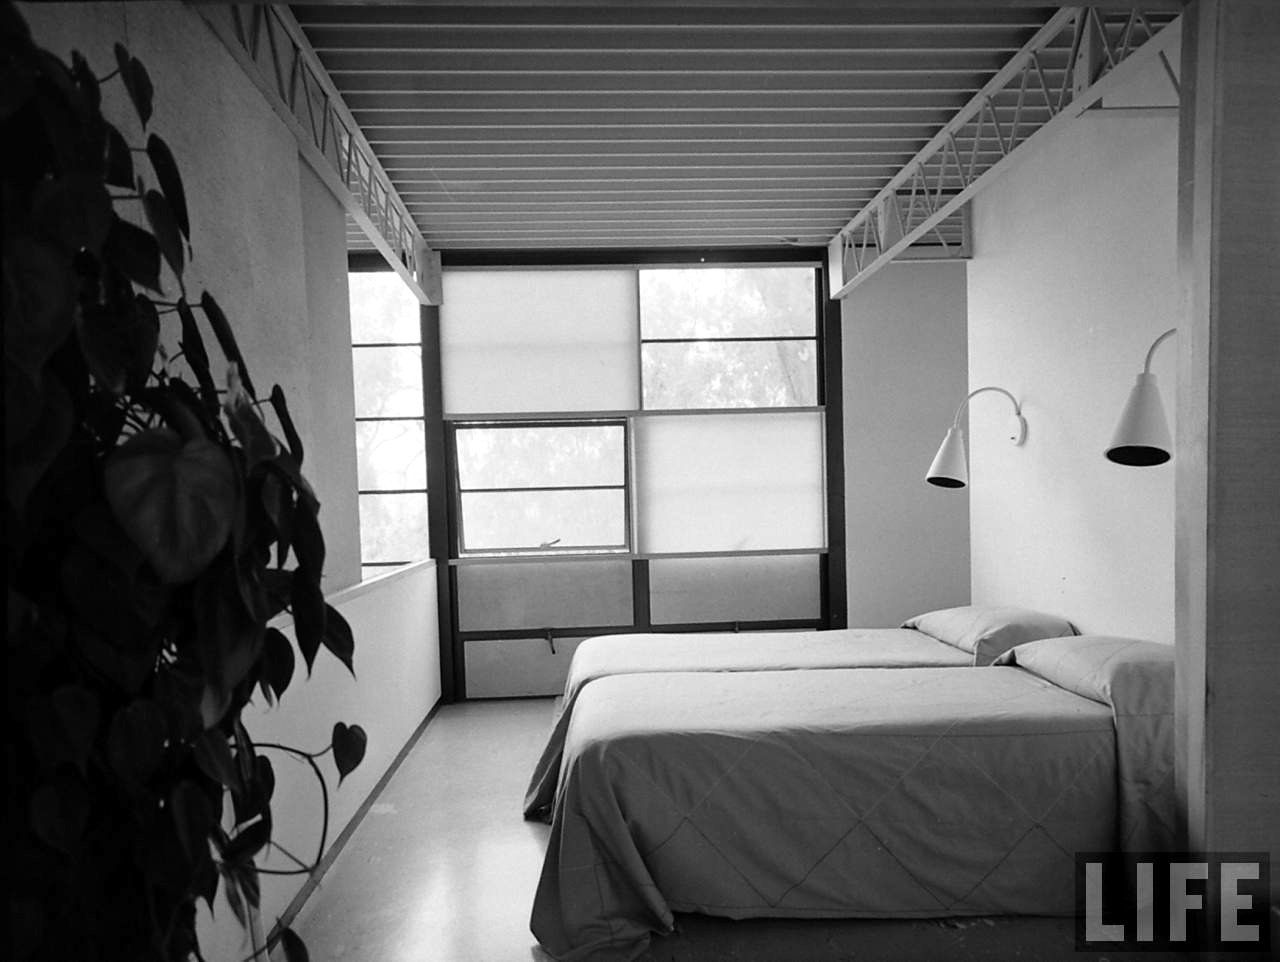 Eames House interior bed room Photo by